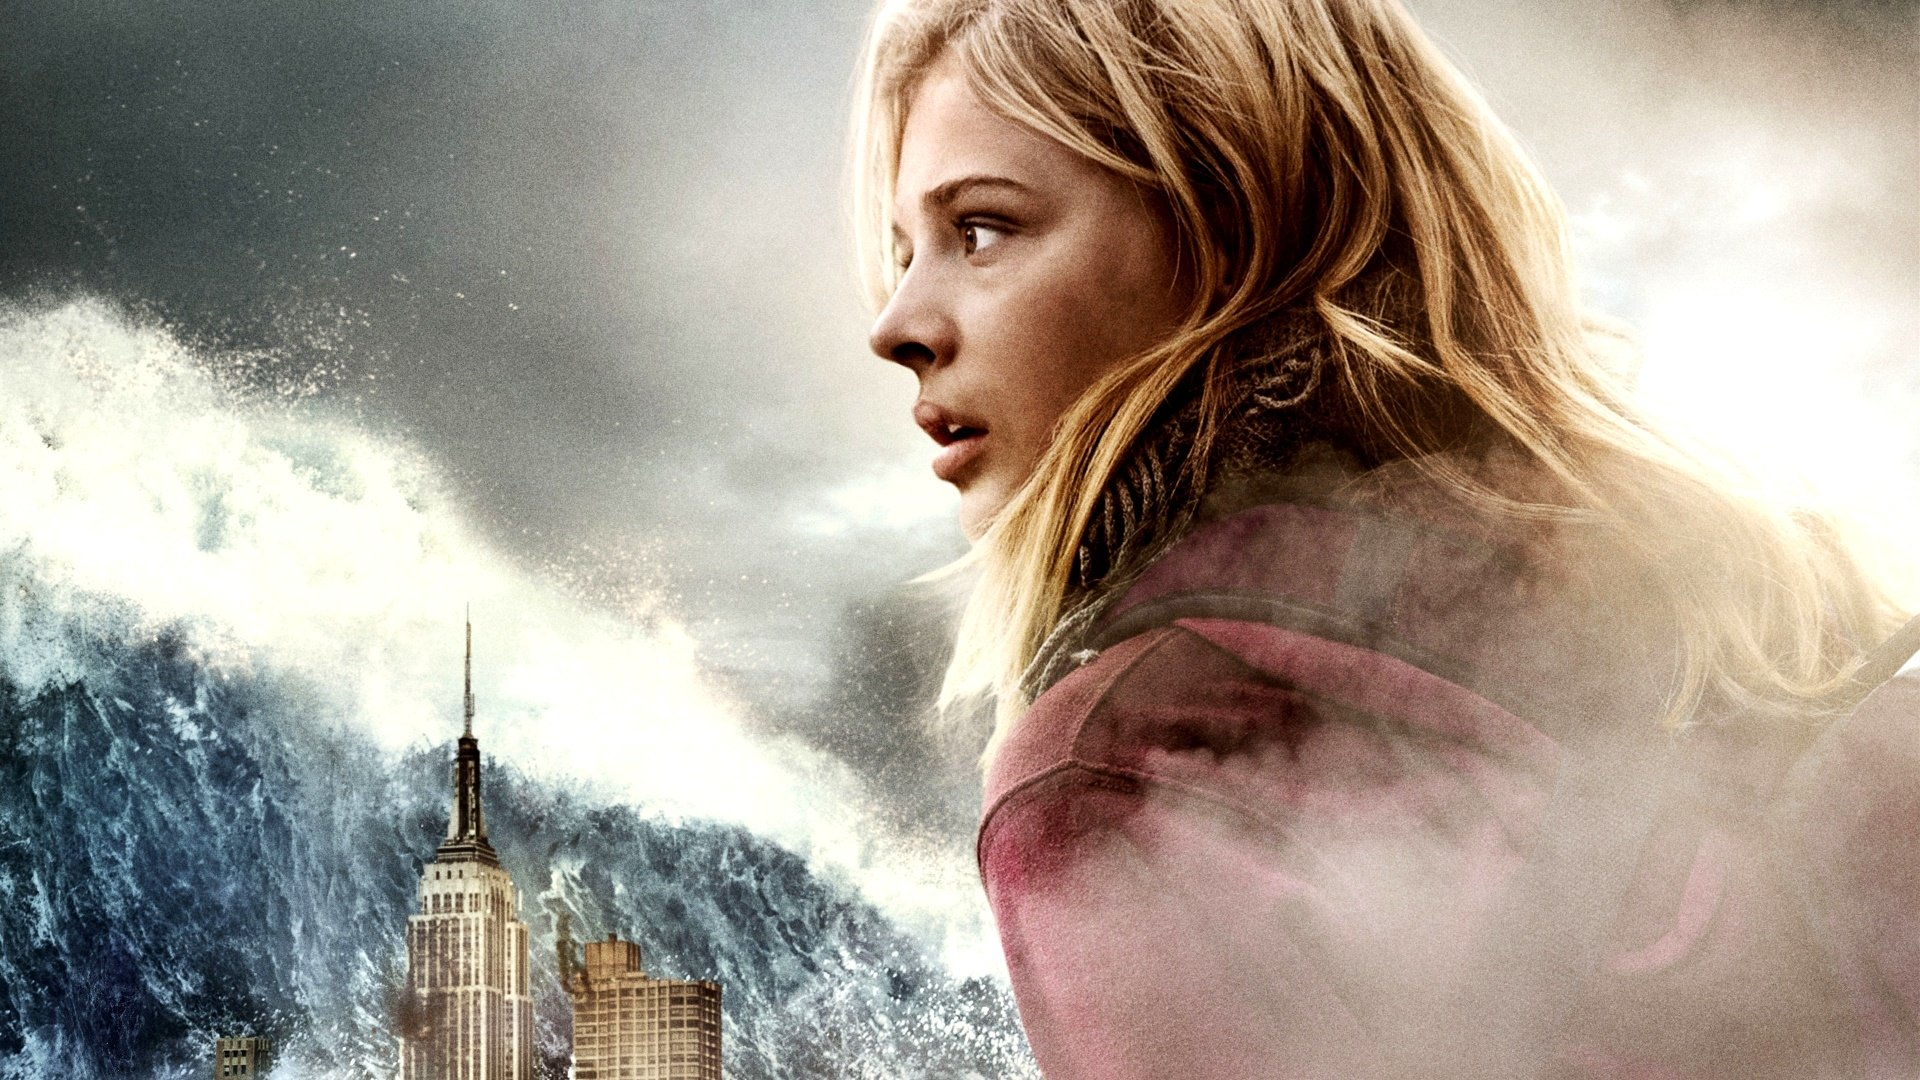 Filme - The 5th Wave  Chloë Grace Moretz Wallpaper